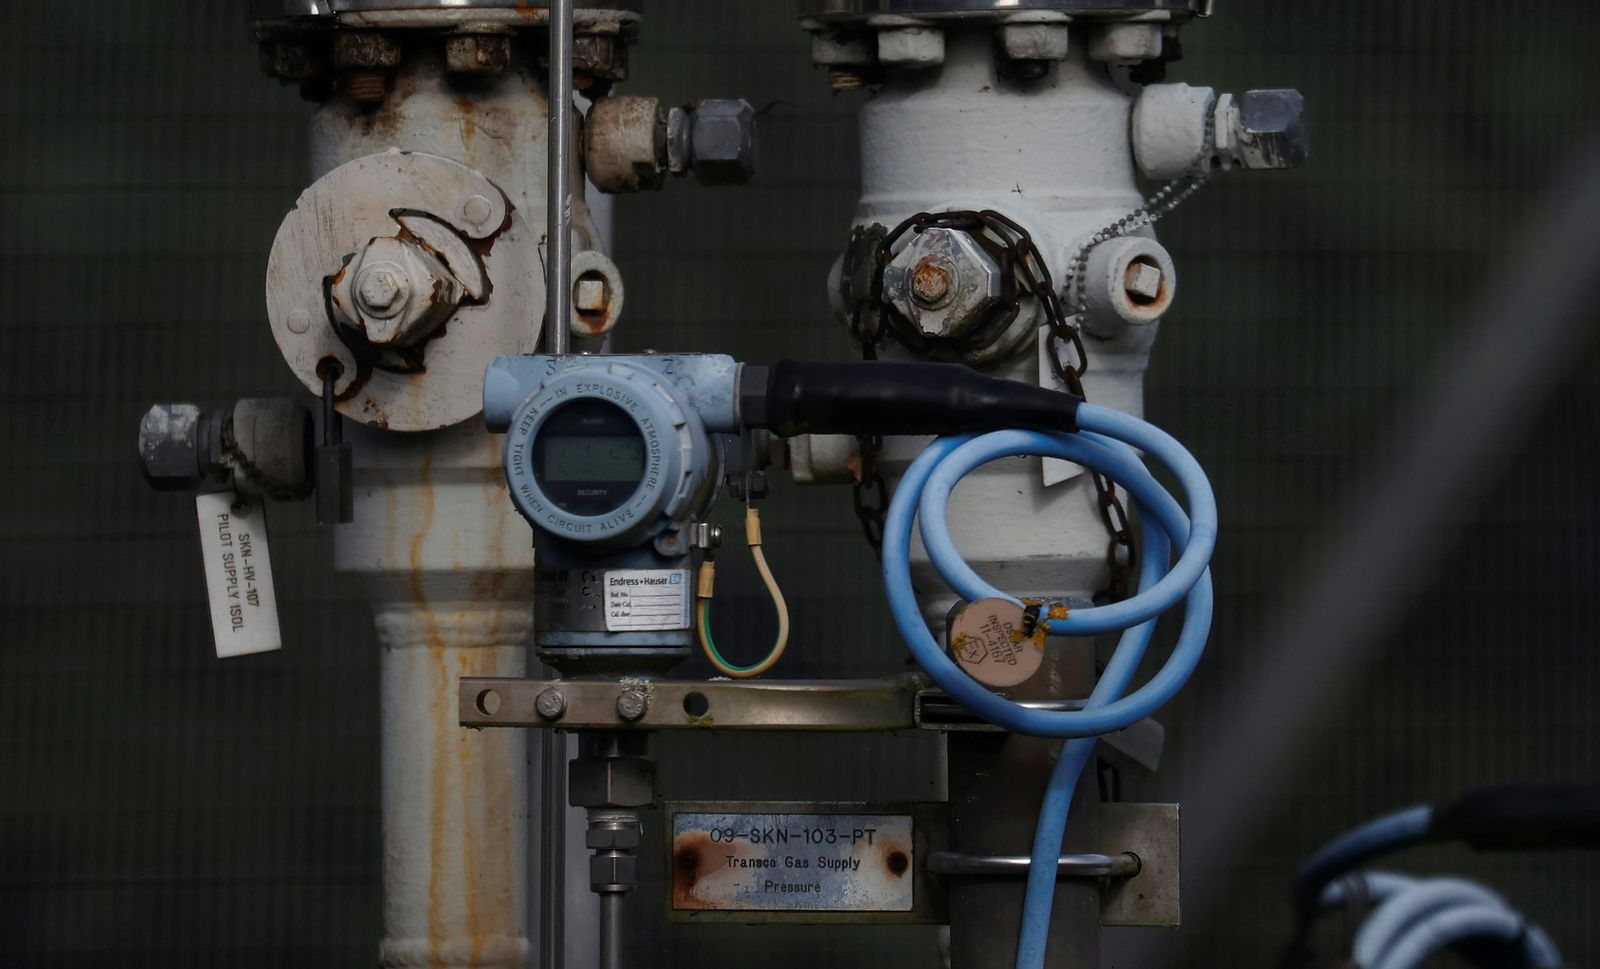 Dials and valves are seen near a section of gas pipeline at a National Grid facility near Knutsford